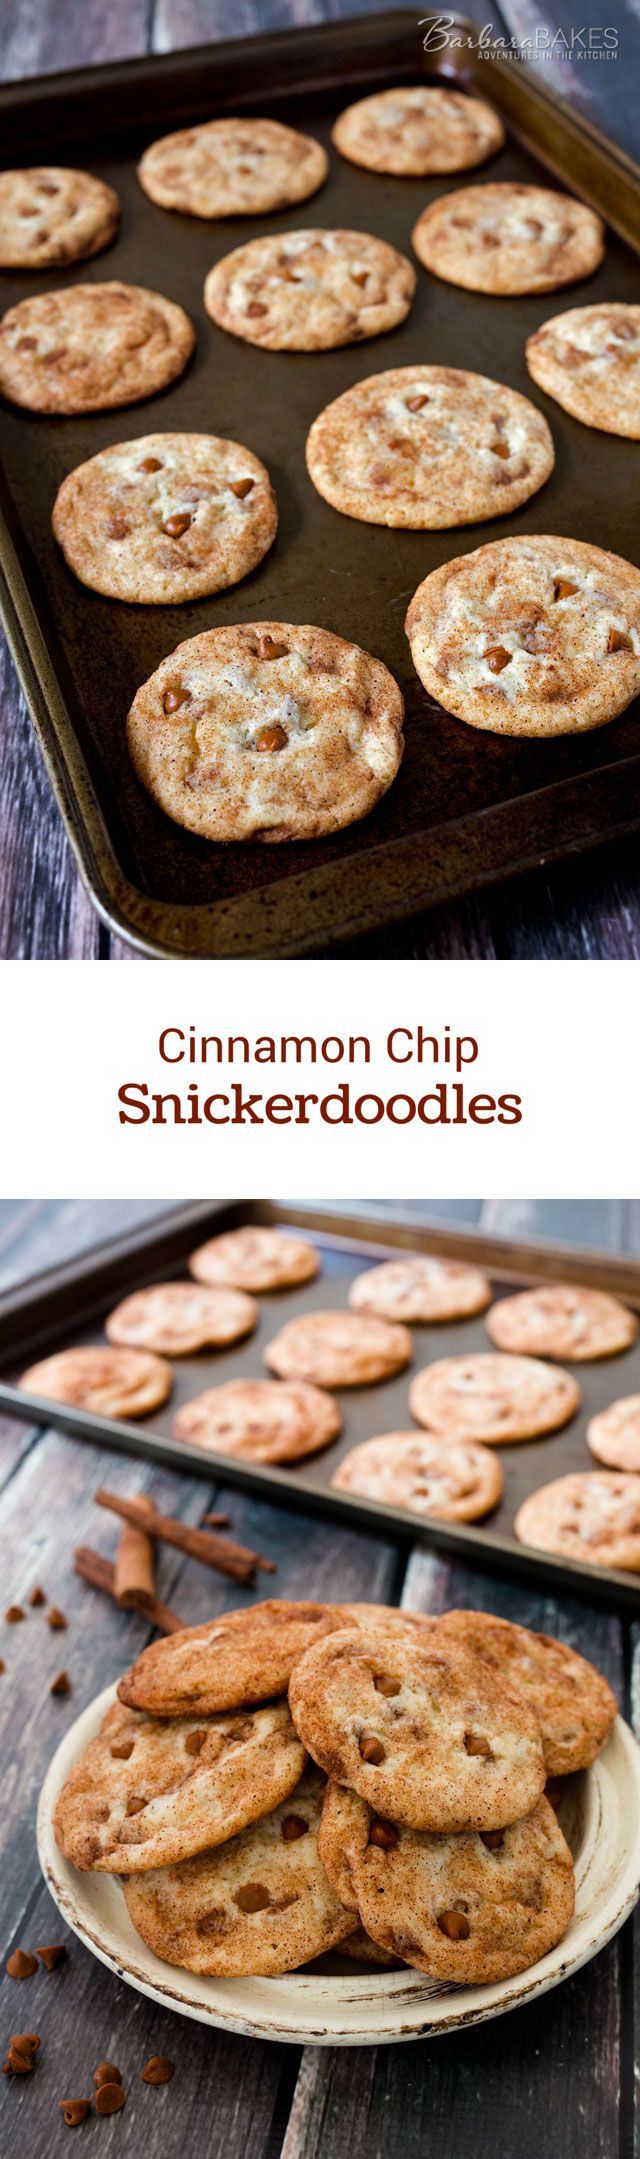 TakeSnickerdoodles to a whole new level with the addition ofCinnamon Chips to the batter.